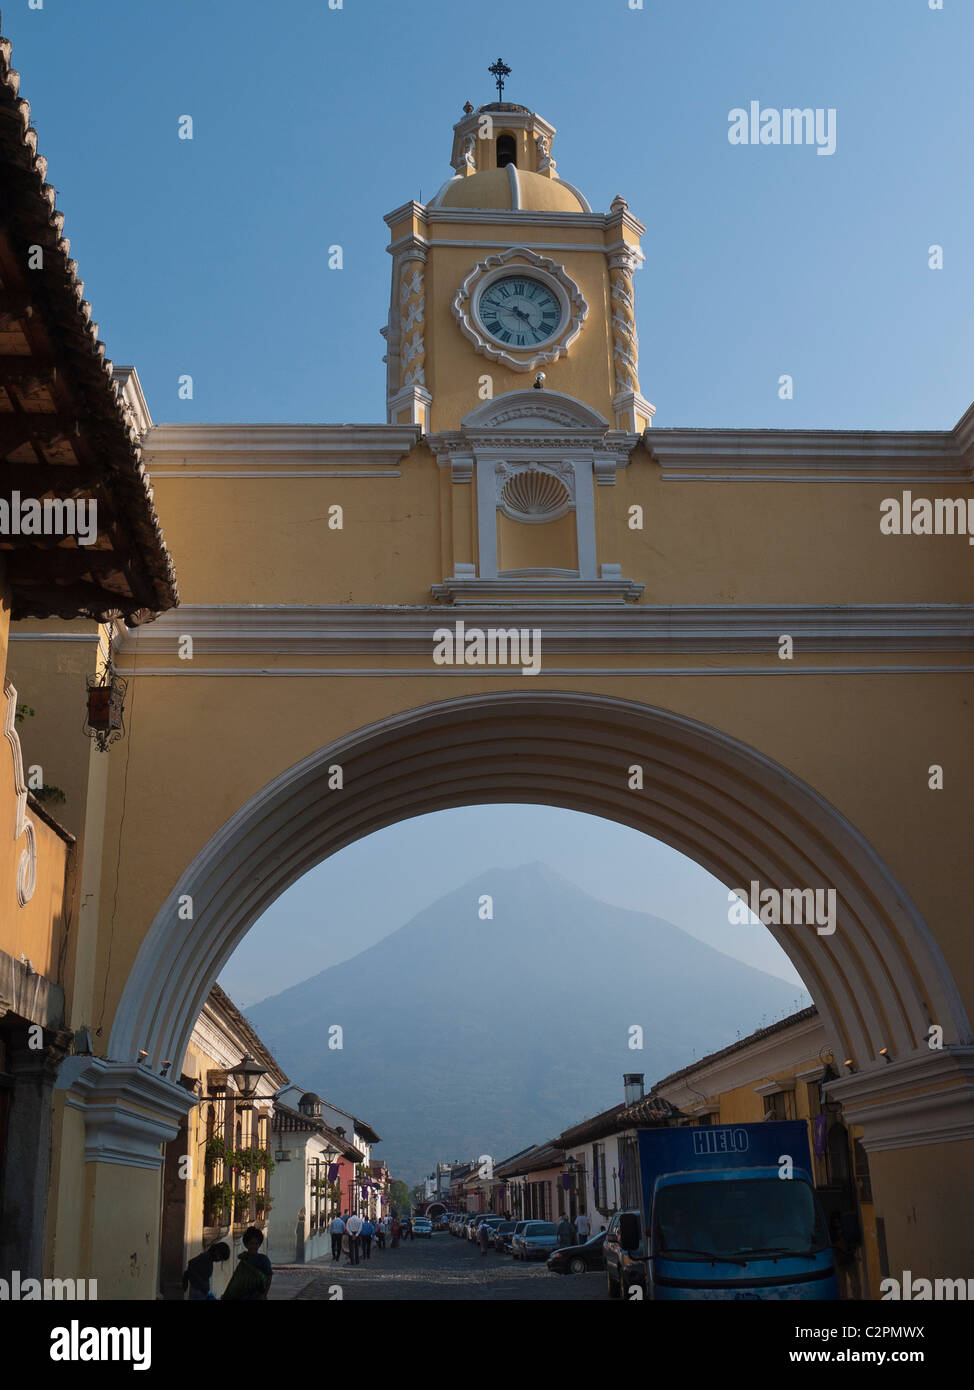 A detail of one of the historic church structures in Antigua, Guatemala with the archway framing the volcano in - Stock Image